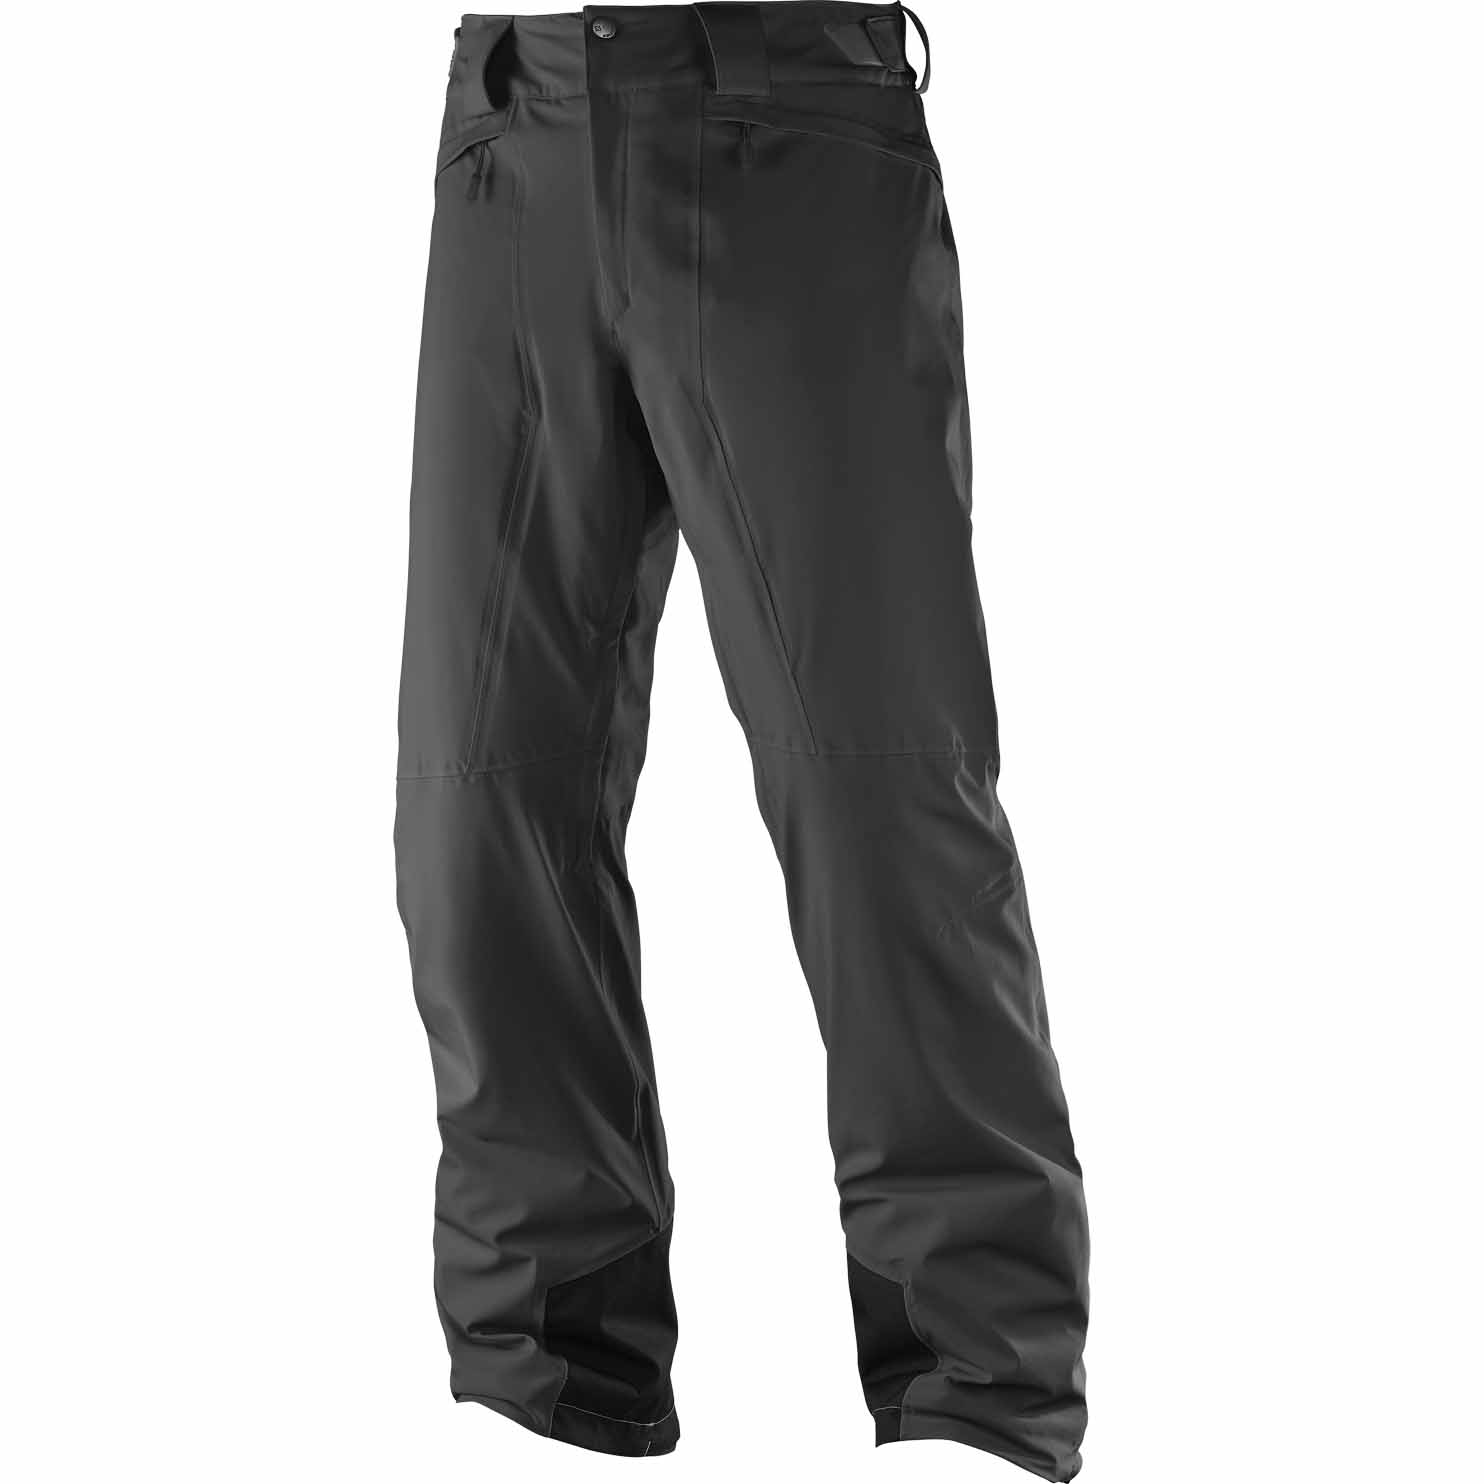 Mens Ski Pants And Salopettes - Anything Technical ffb8e0c93